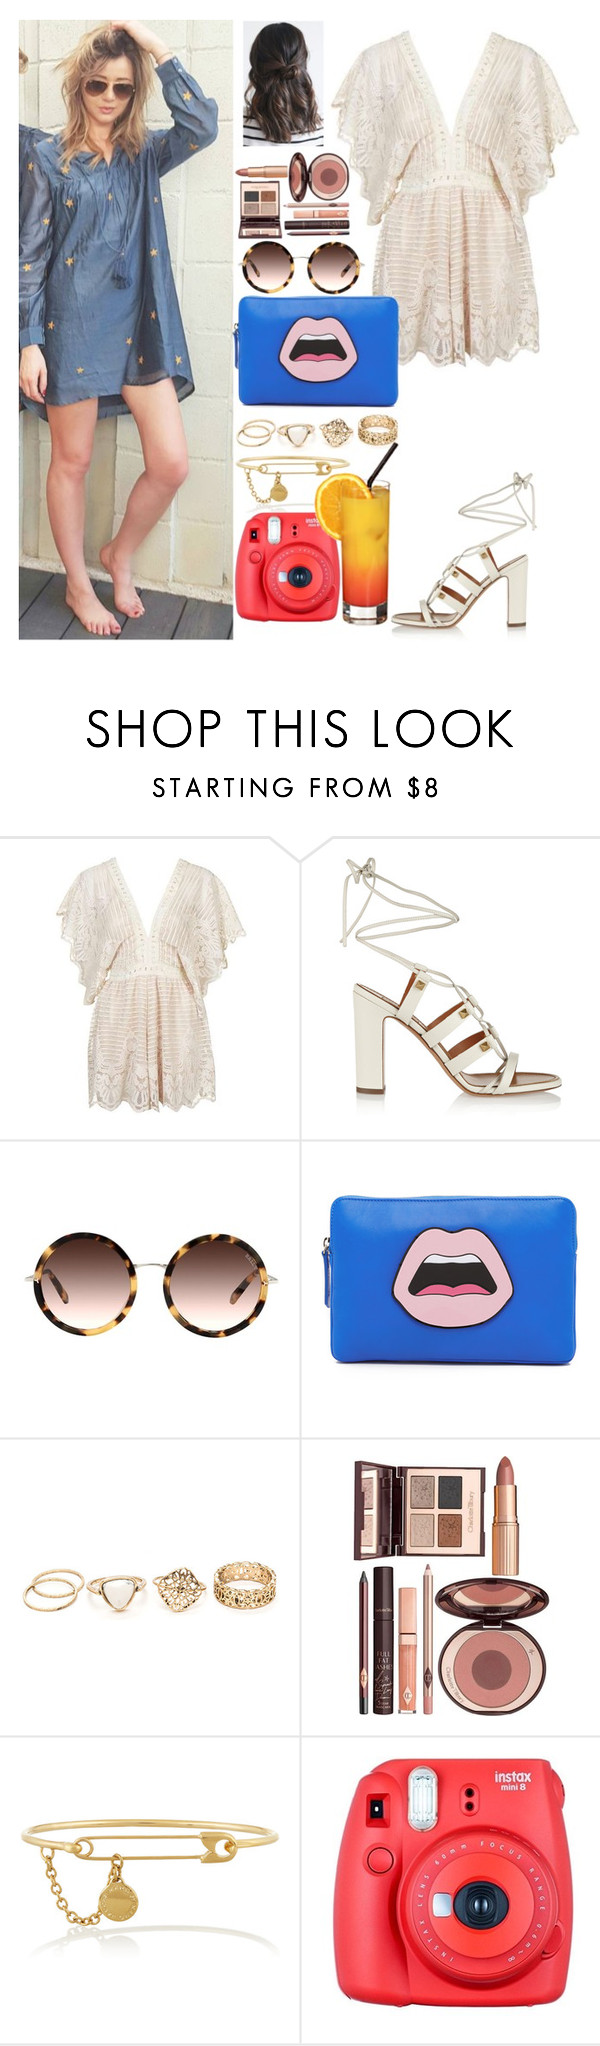 """Lazy day with Eleanor"" by zandramalik ❤ liked on Polyvore featuring Topshop, Valentino, Yazbukey, Charlotte Tilbury, Marc by Marc Jacobs and Fuji"